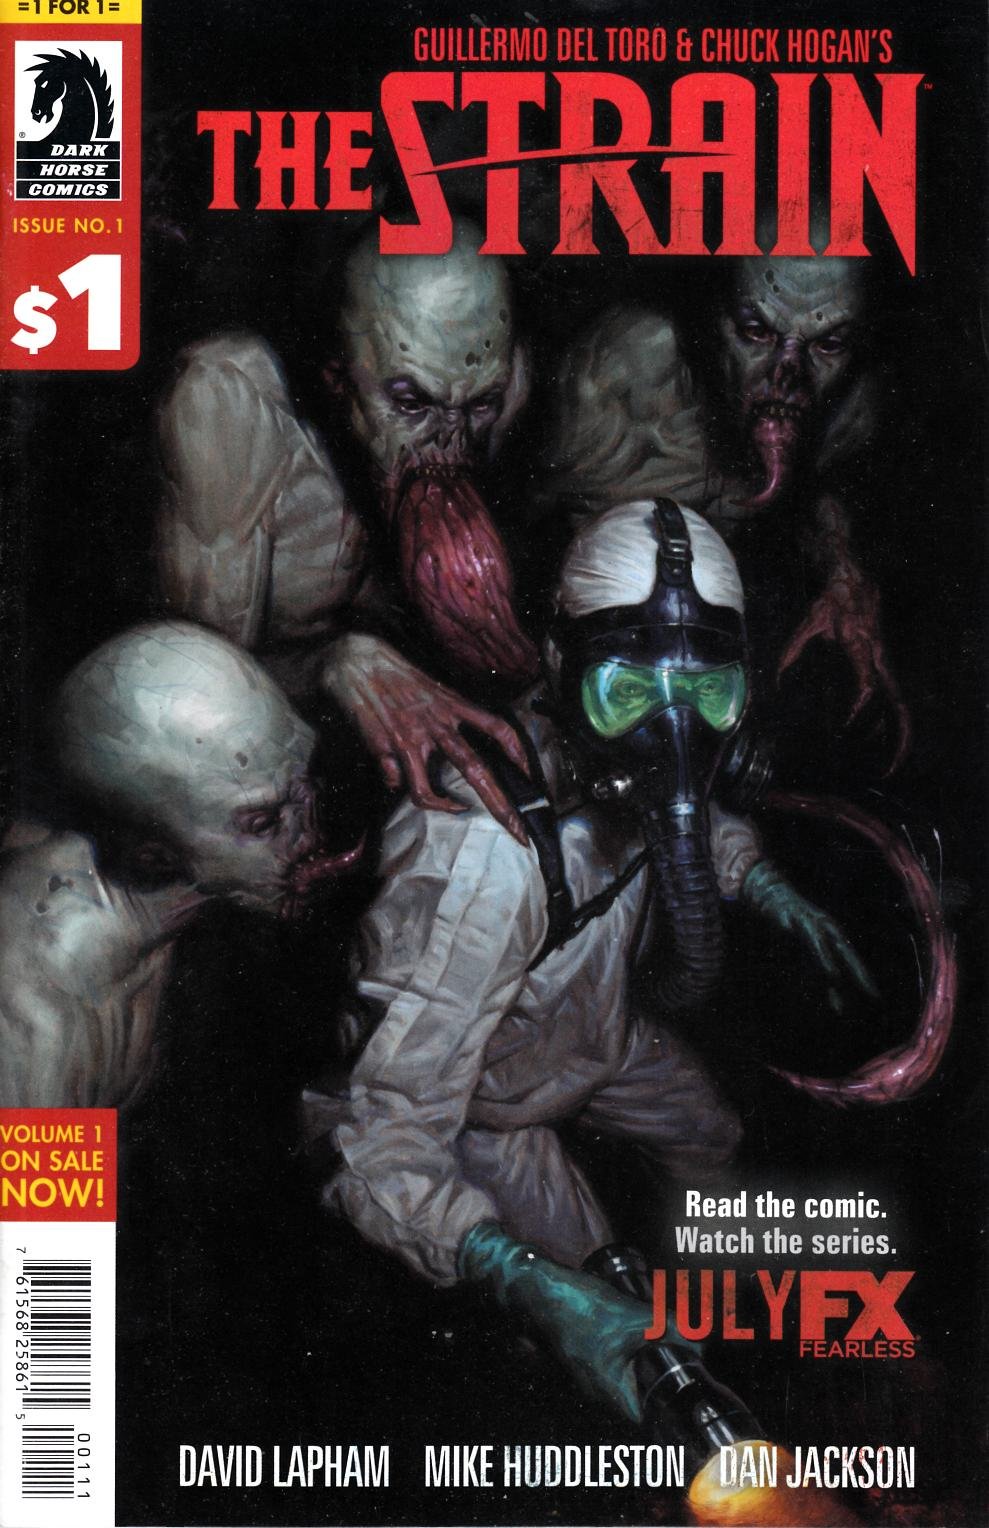 The Strain #1 1 for $1 Edition [Comic] THUMBNAIL